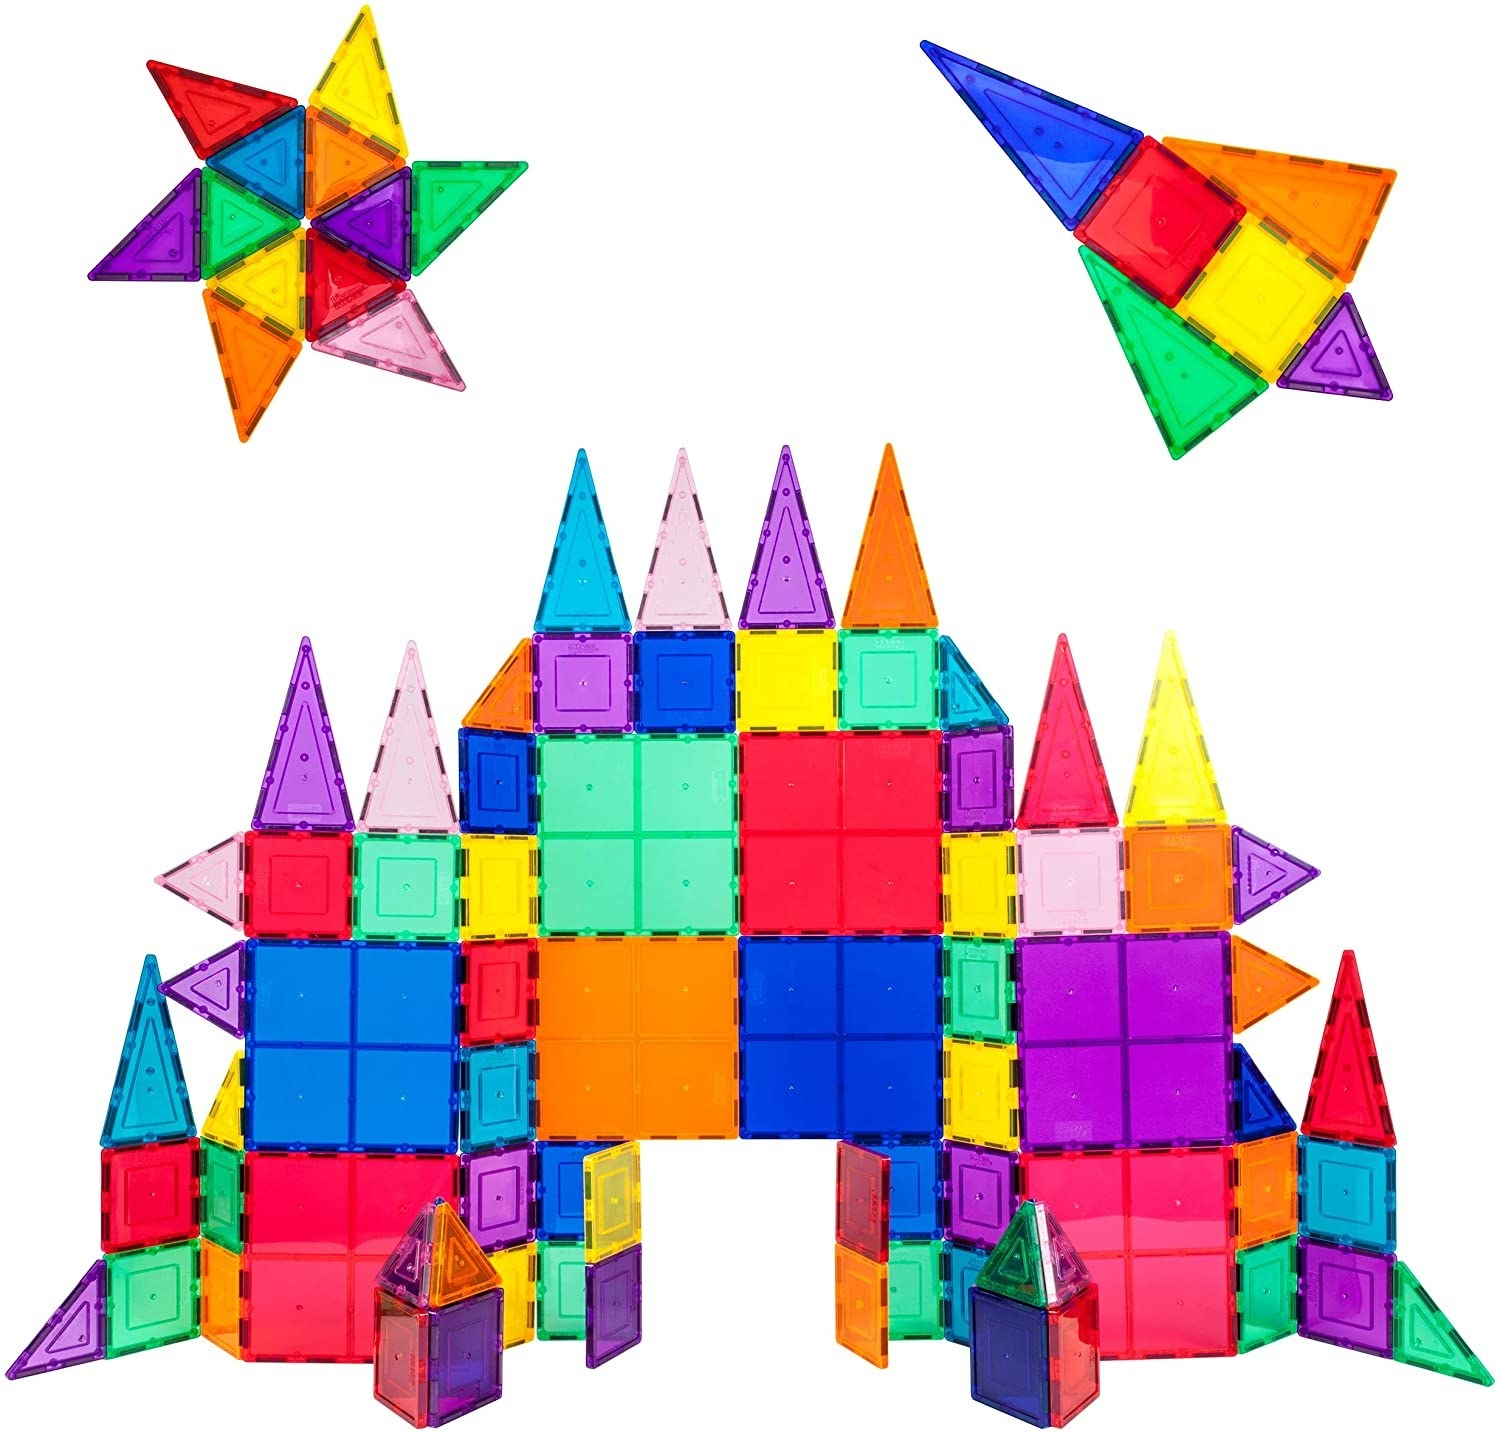 A set of brightly colored magnetic building tiles constructed into a castle.